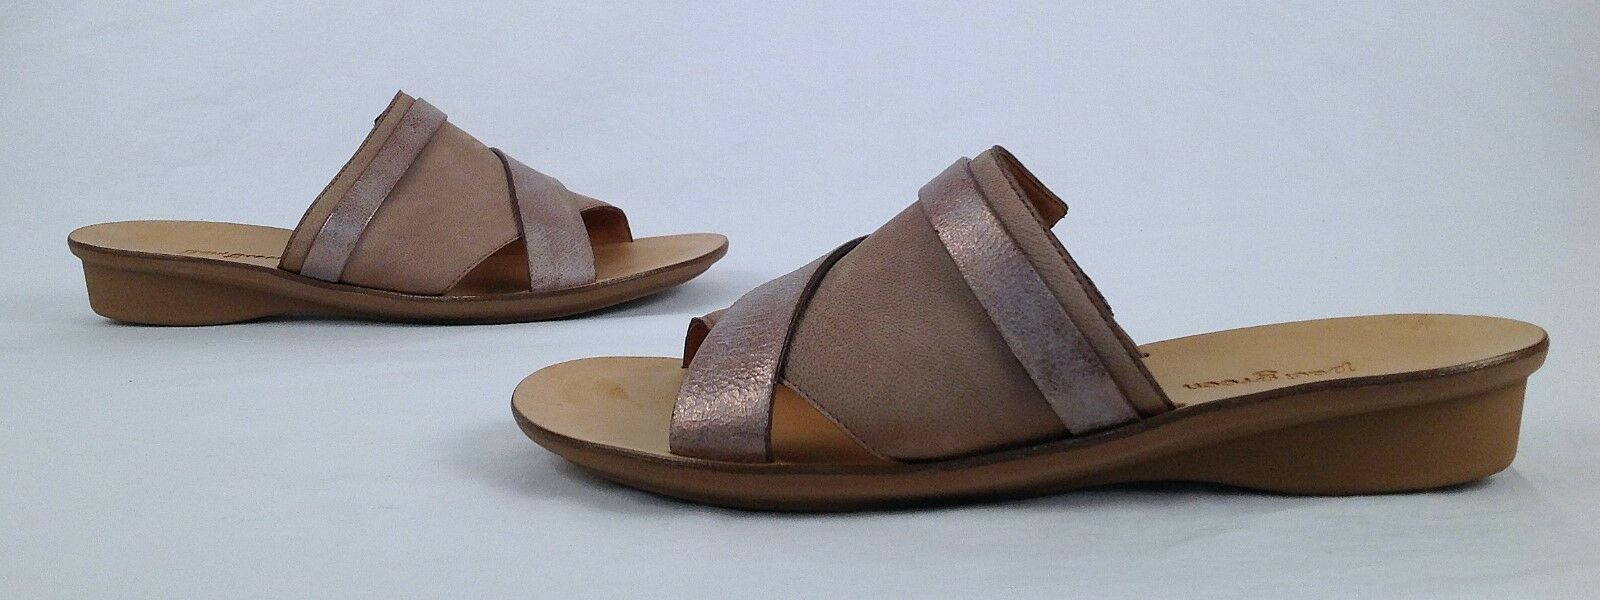 paul green bayside leather sandal 235 size us 10 235 p16